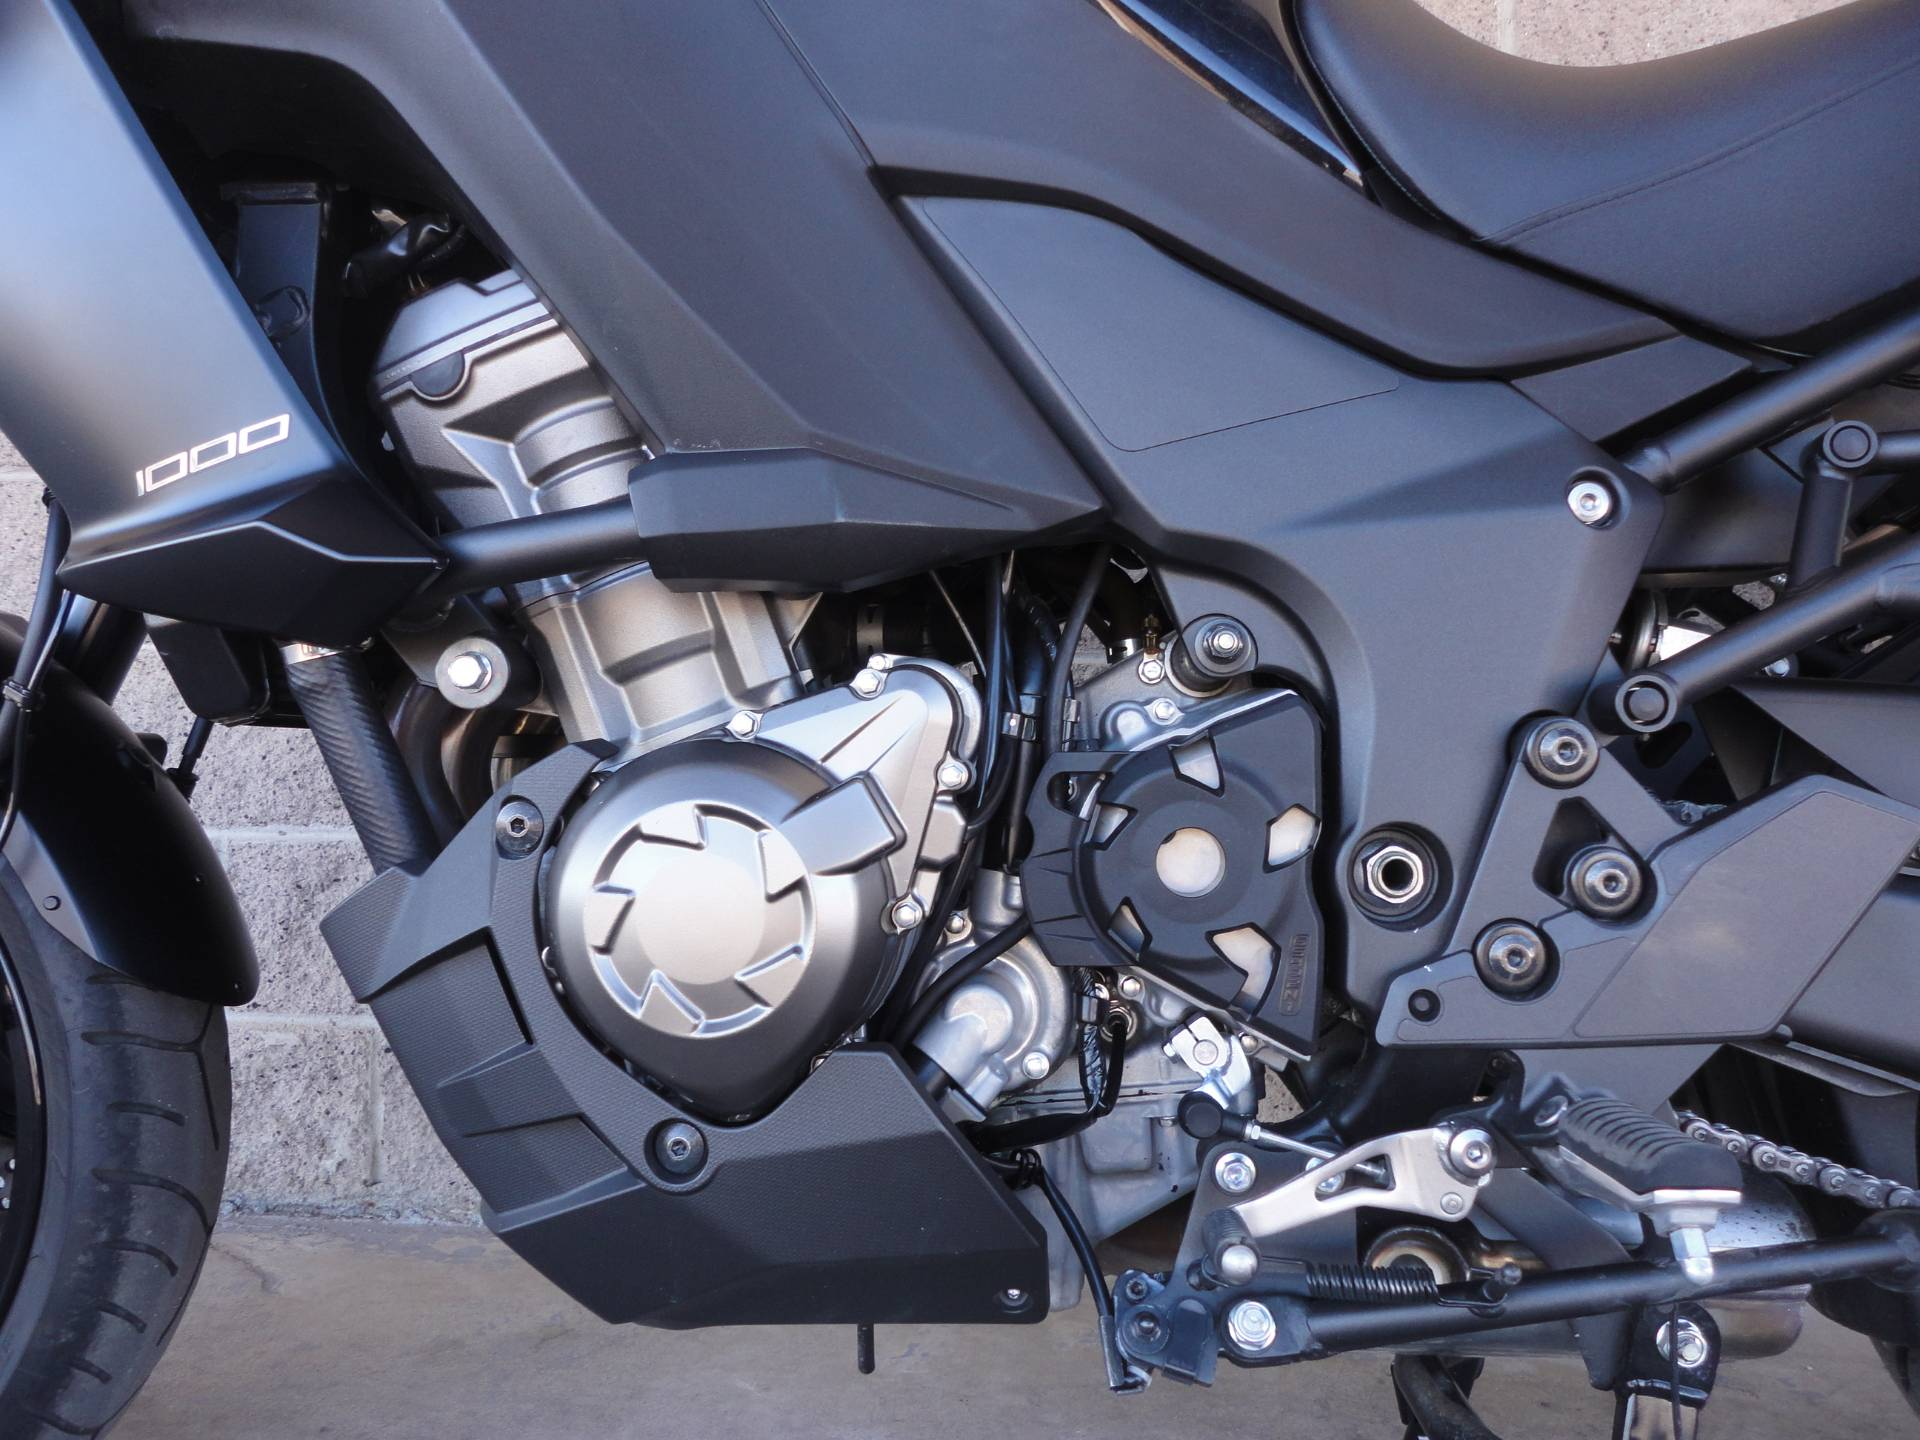 2015 Kawasaki Versys® 1000 LT in Denver, Colorado - Photo 5